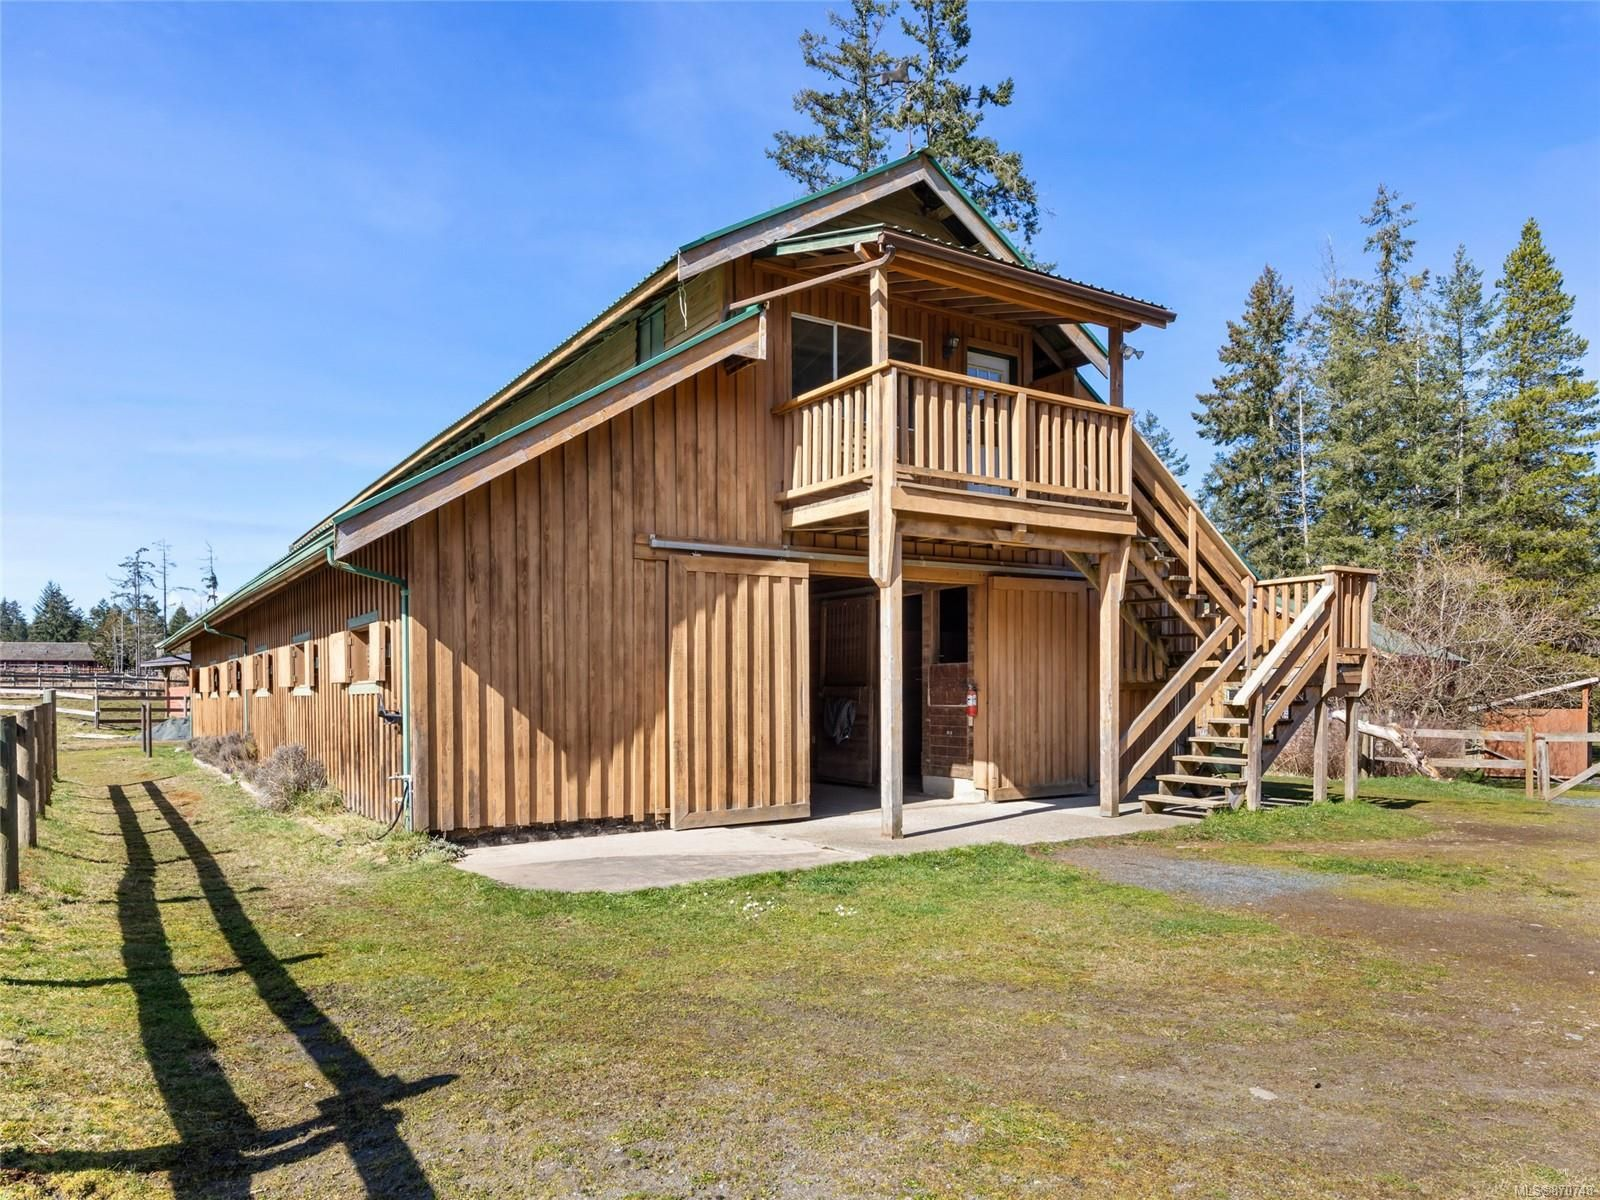 Main Photo: 2040 Saddle Dr in : PQ Nanoose House for sale (Parksville/Qualicum)  : MLS®# 870748